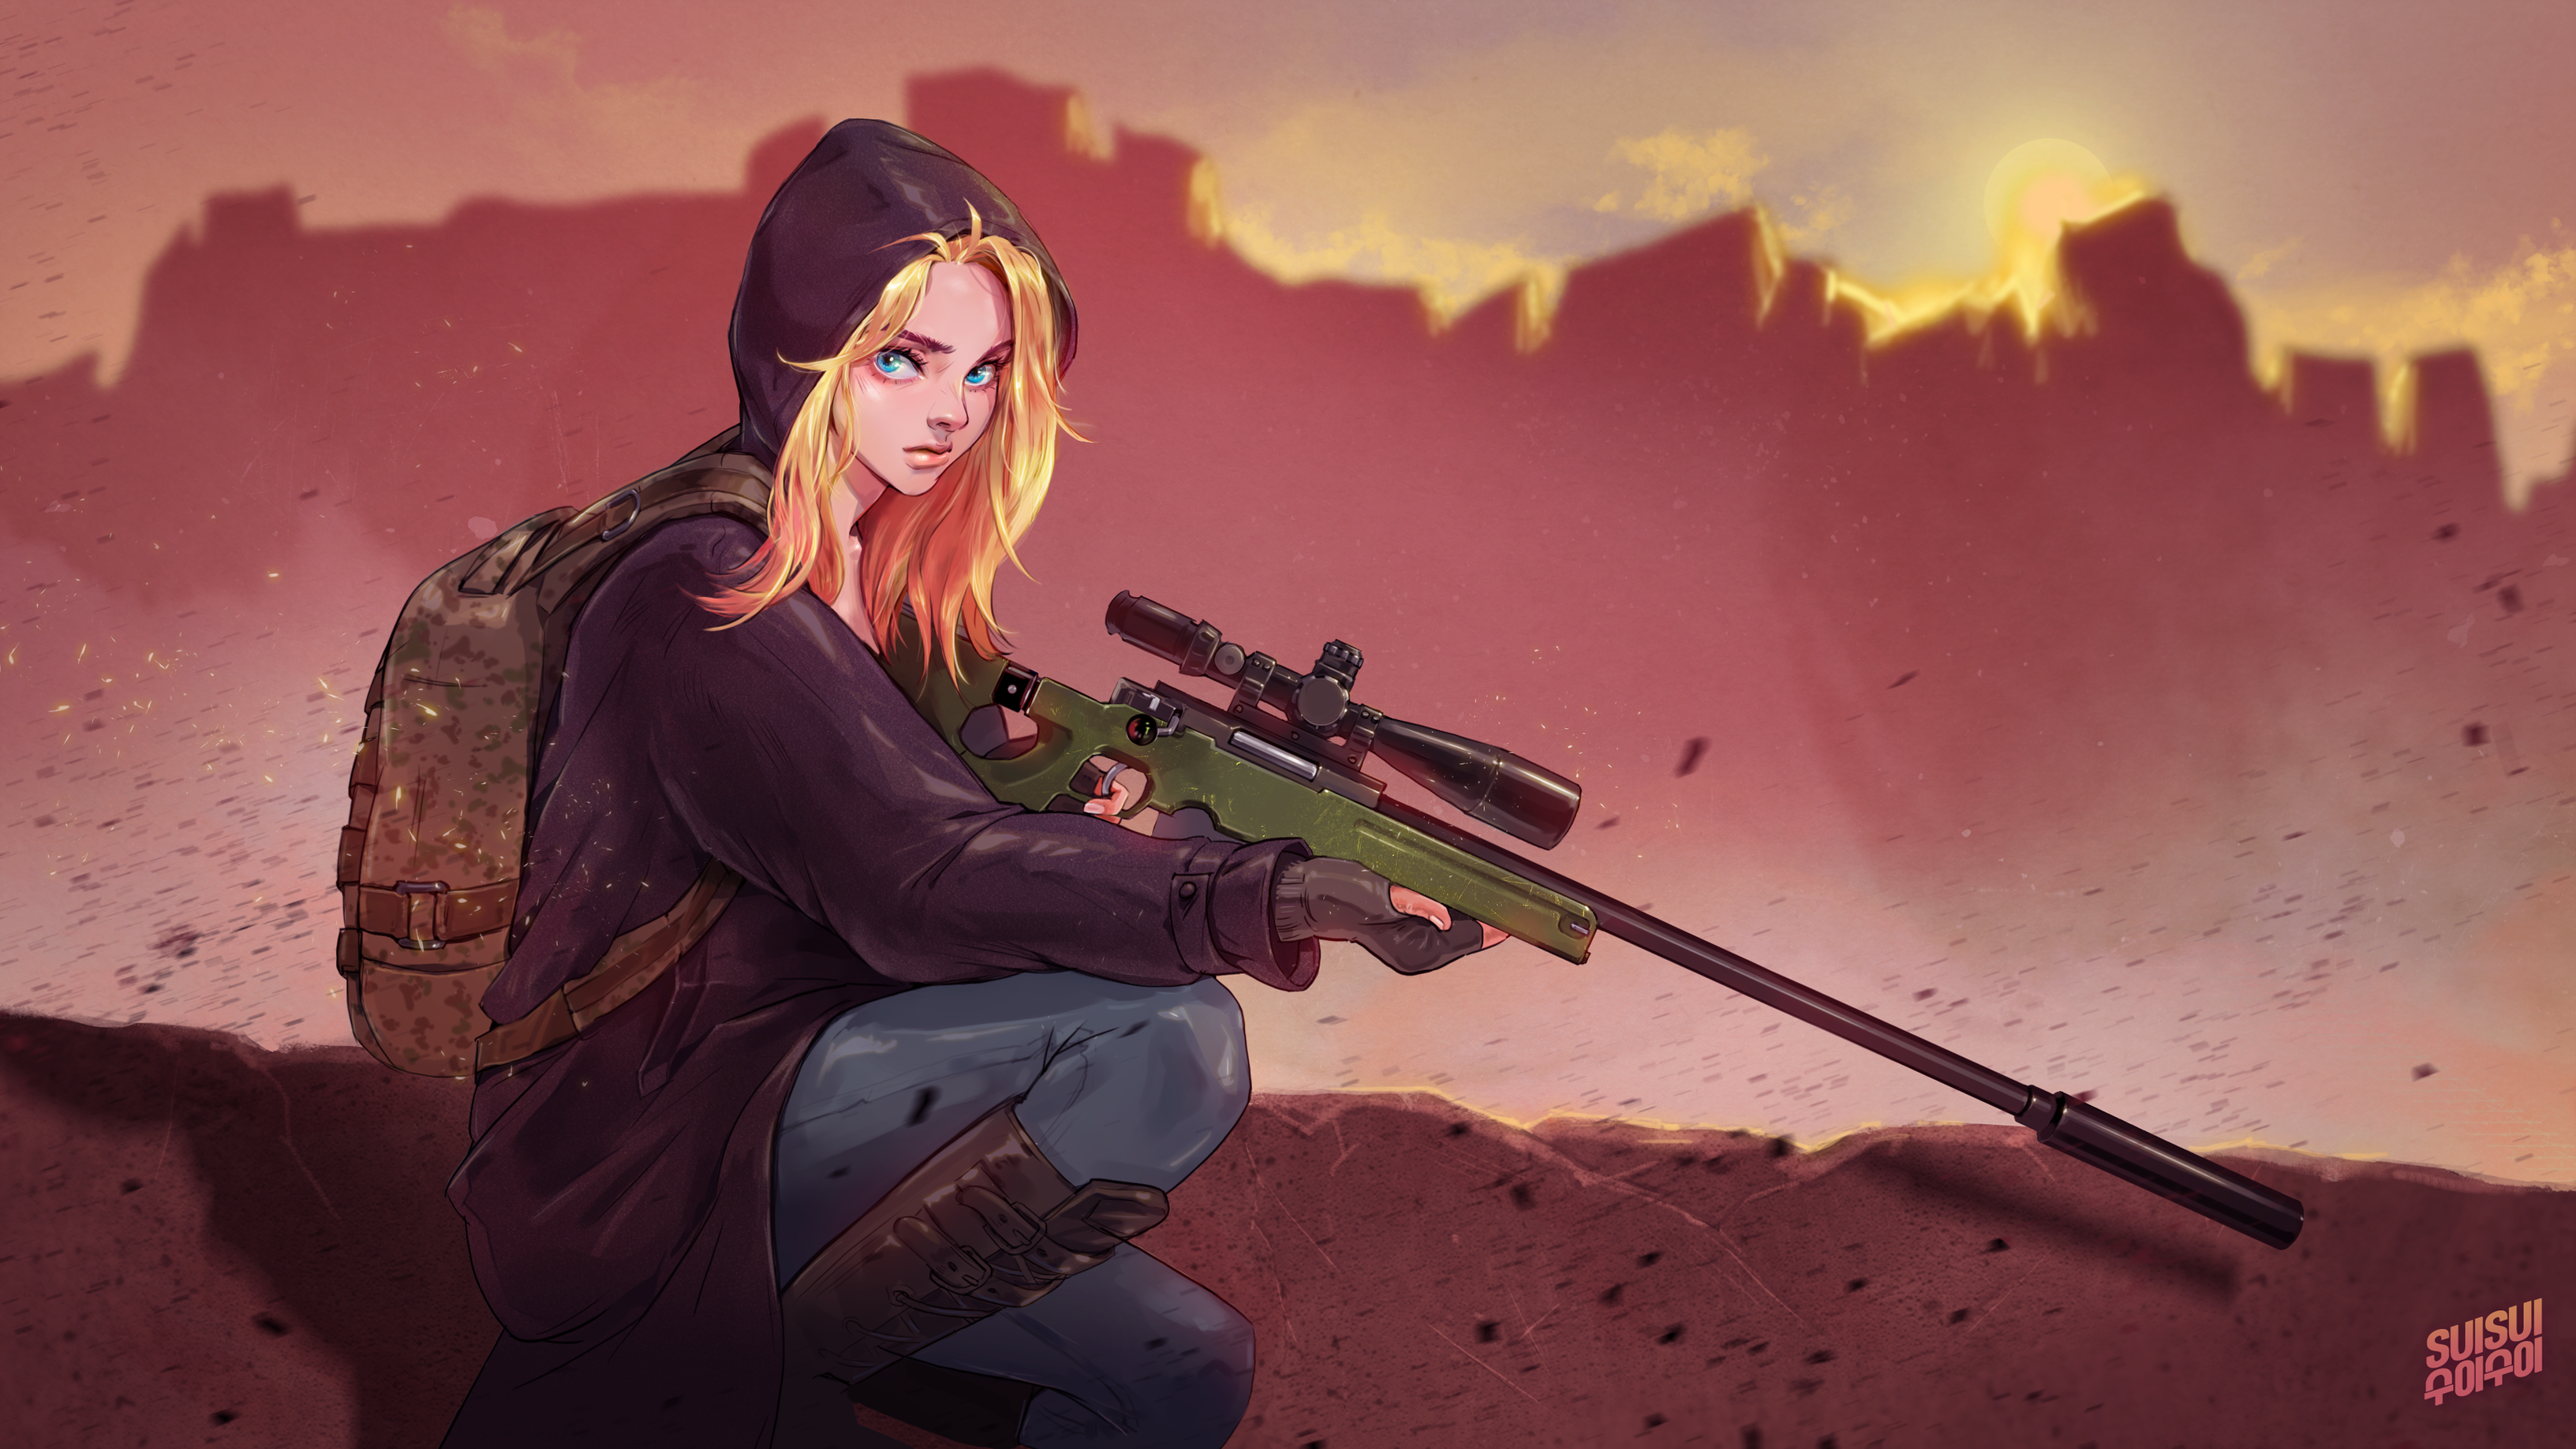 Pubg Wallpaper Engine Illustration By Hey Suisui On Deviantart: Hooman Favourites By Fecu On DeviantArt